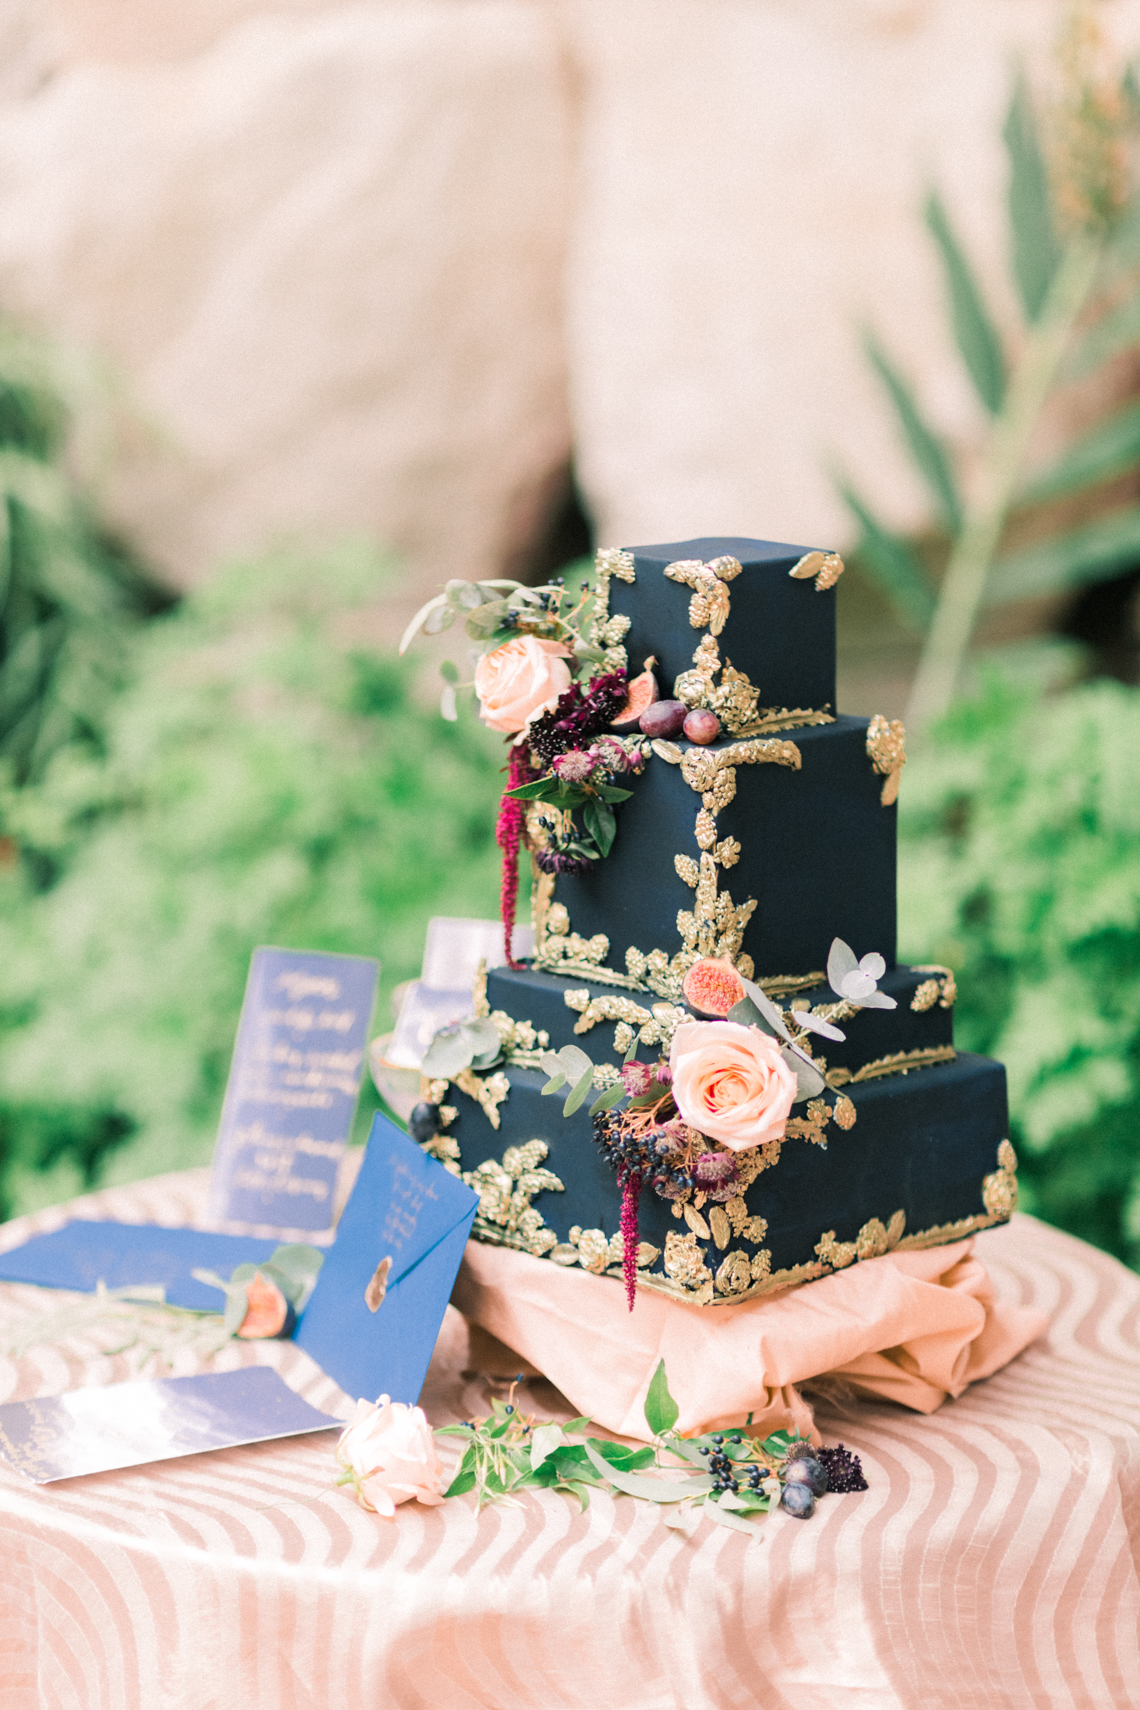 I absolutely love square cakes. Original and elegant in design, this navy, gold and blush cake by The Custom Cake Boutique is a perfect show stopping centrepiece.